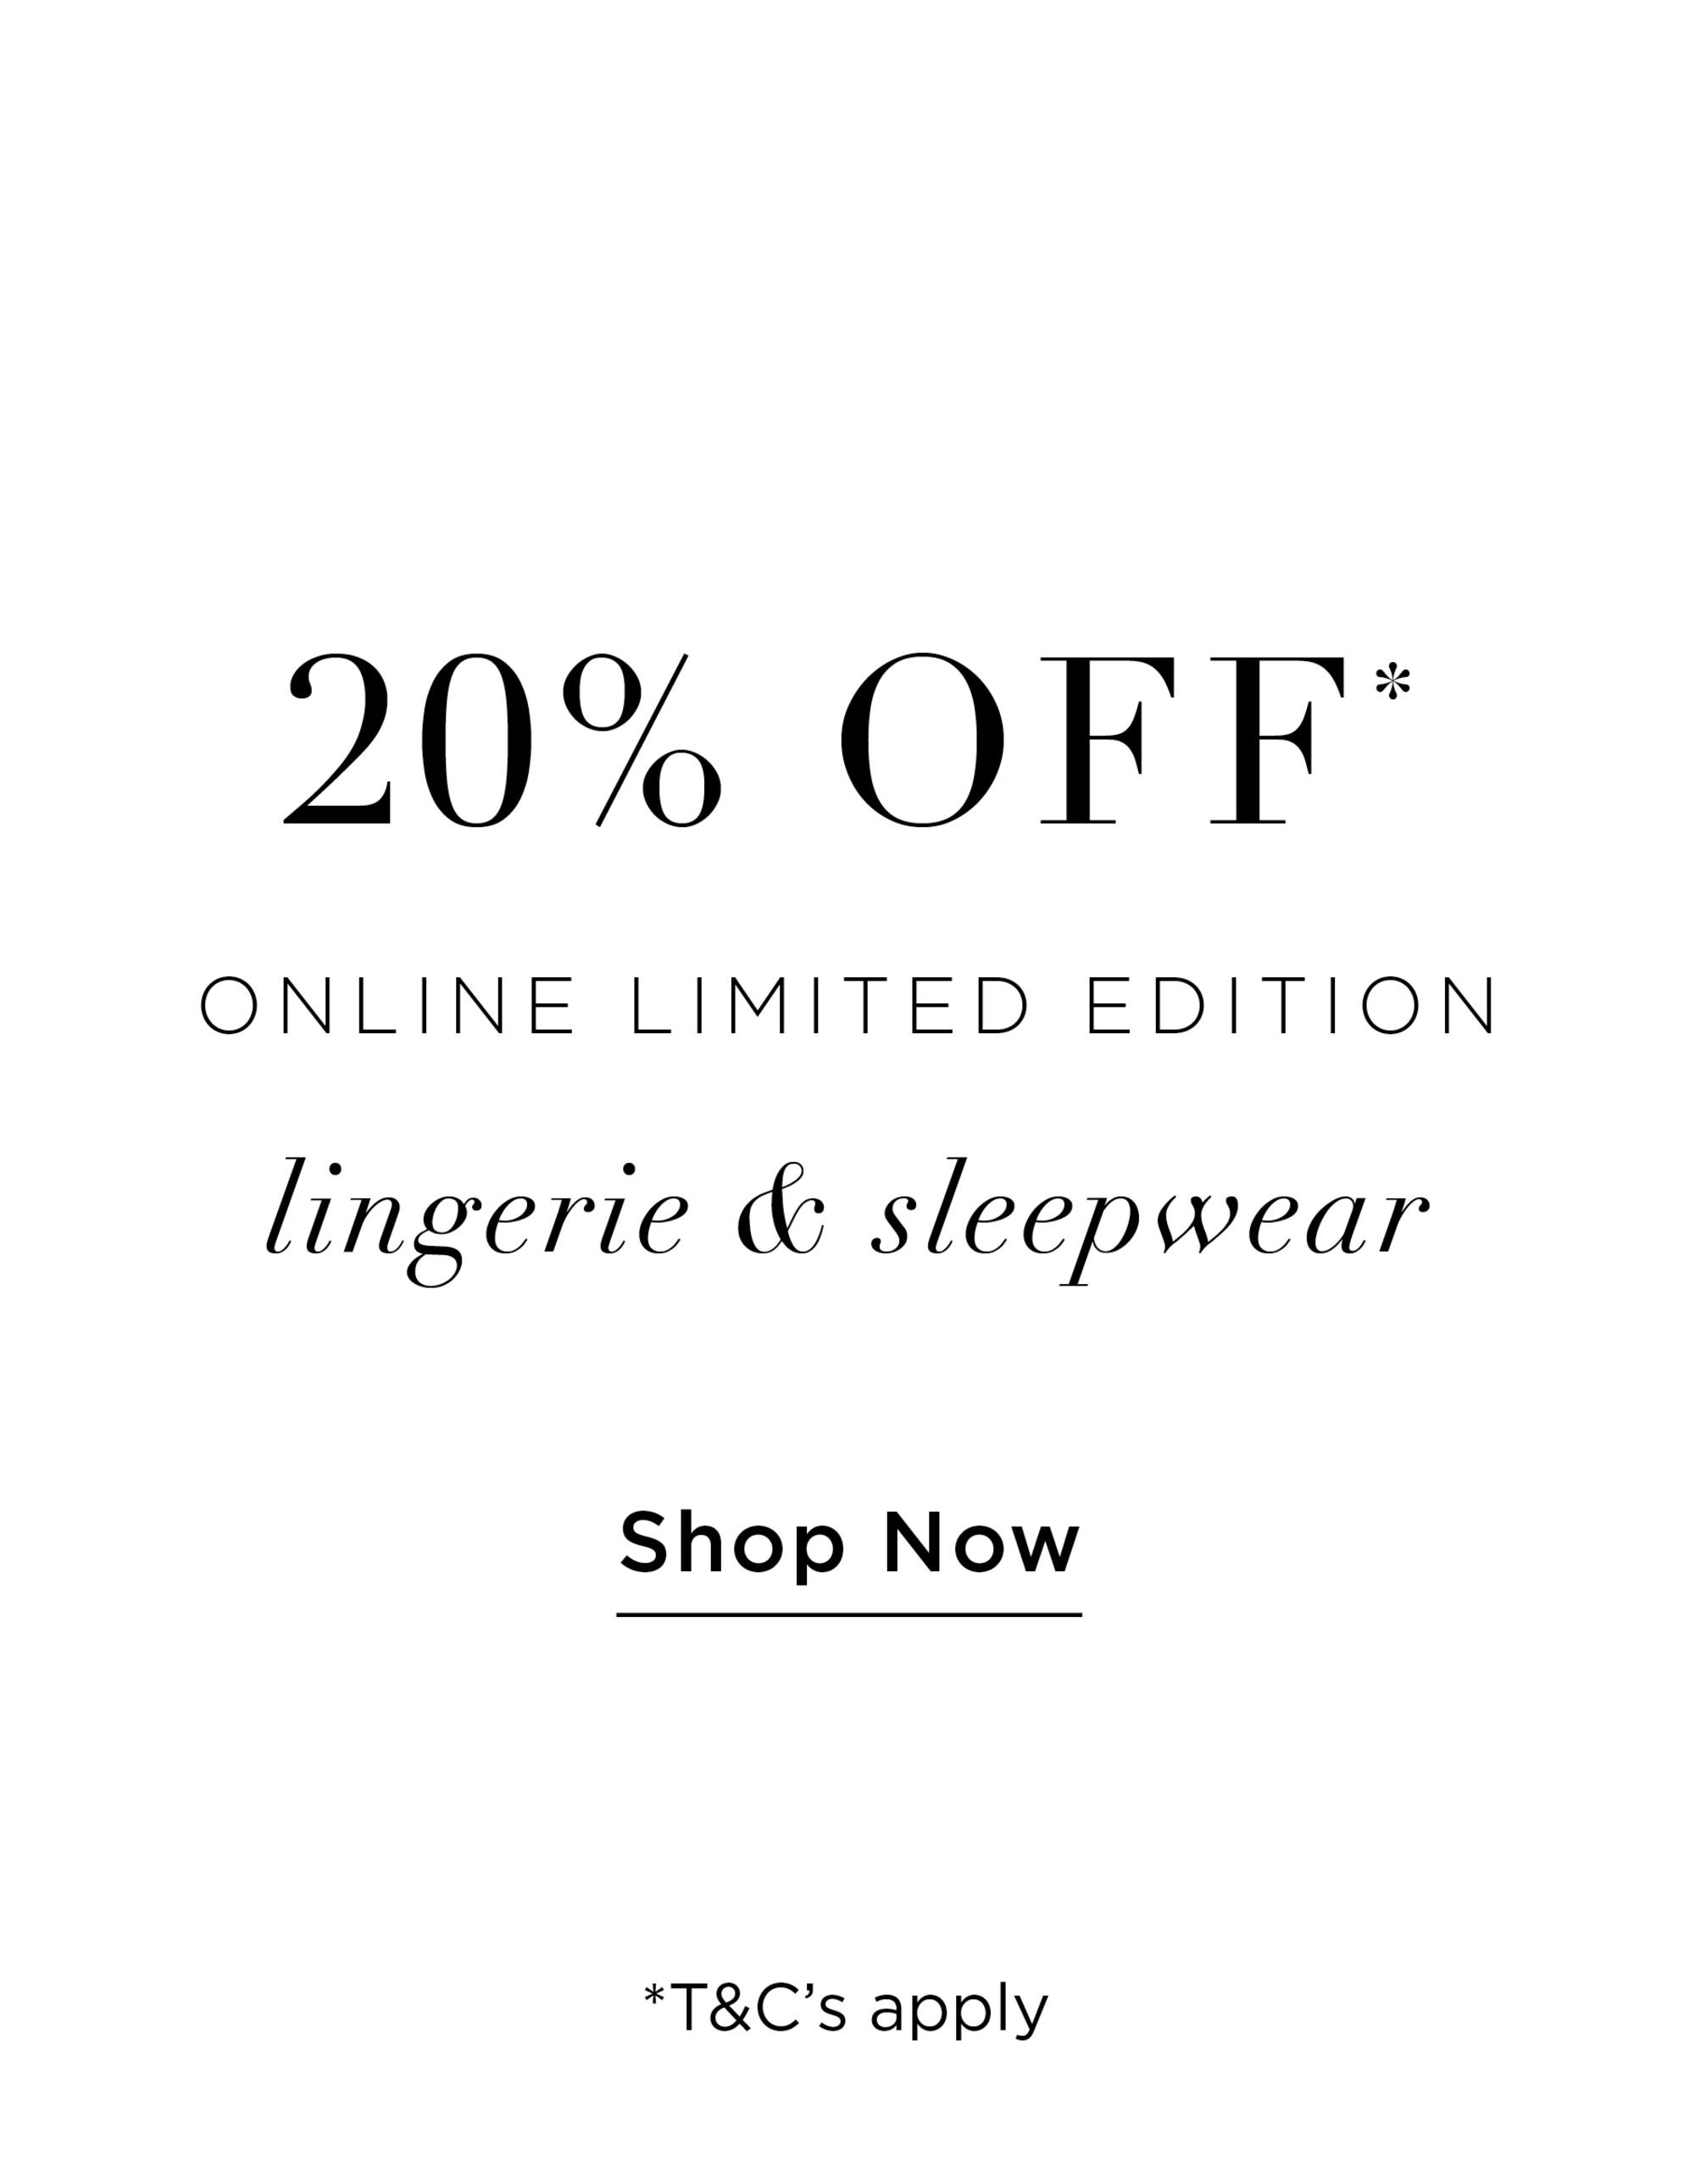 20% Off* Limited Edition Lingerie & Sleepwear